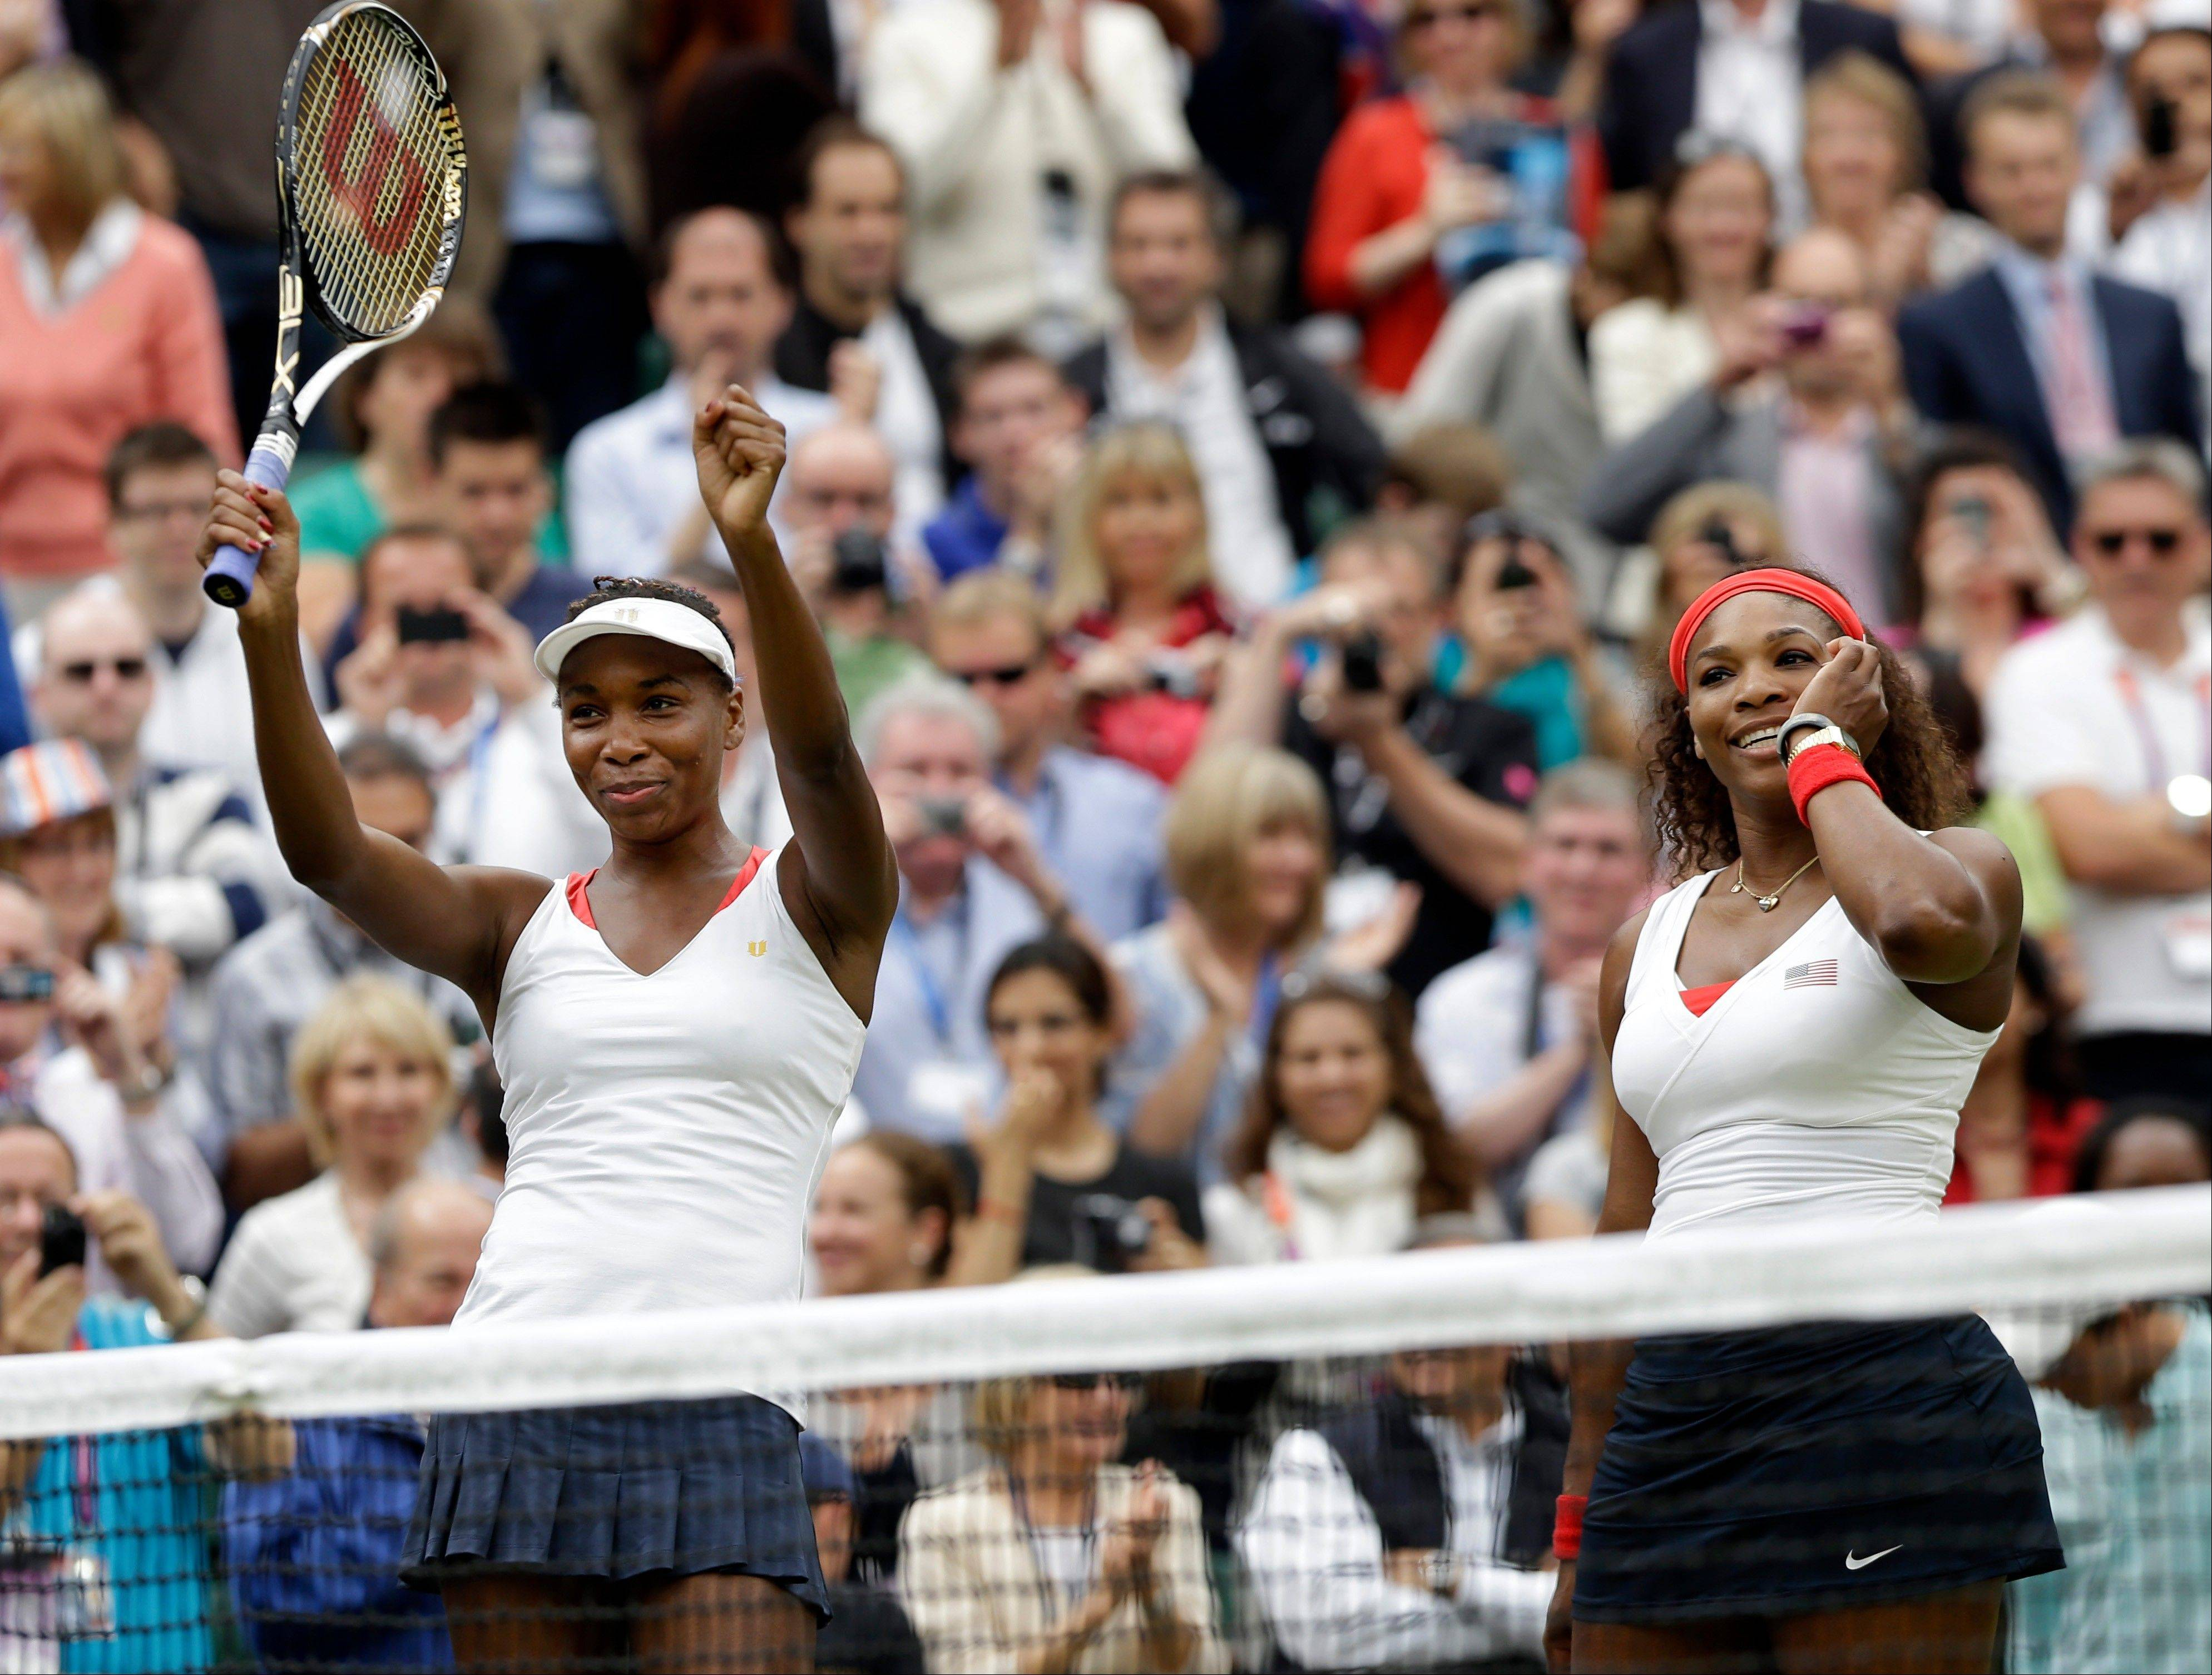 Venus Williams, left, and Serena Williams of the United States celebrate their victory against Andrea Hlavackova and Lucie Hradecka of the Czech Republic in the gold medal women's doubles match at the All England Lawn Tennis Club in Wimbledon, London at the 2012 Summer Olympics, Sunday, Aug. 5, 2012.